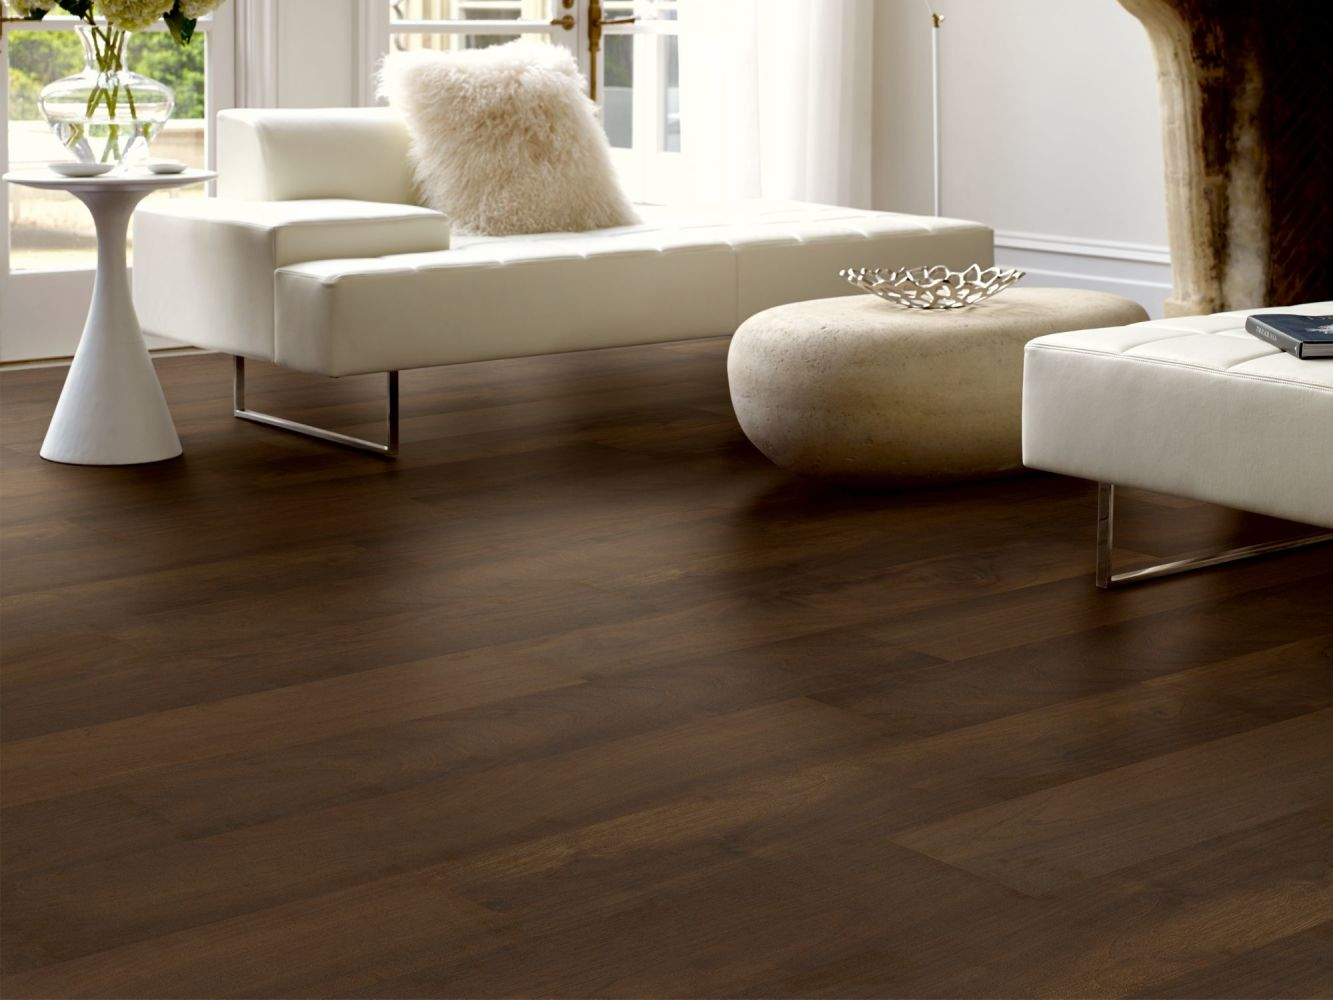 Shaw Floors Resilient Residential Prodigy Hdr Plus Simplicity 07095_2038V